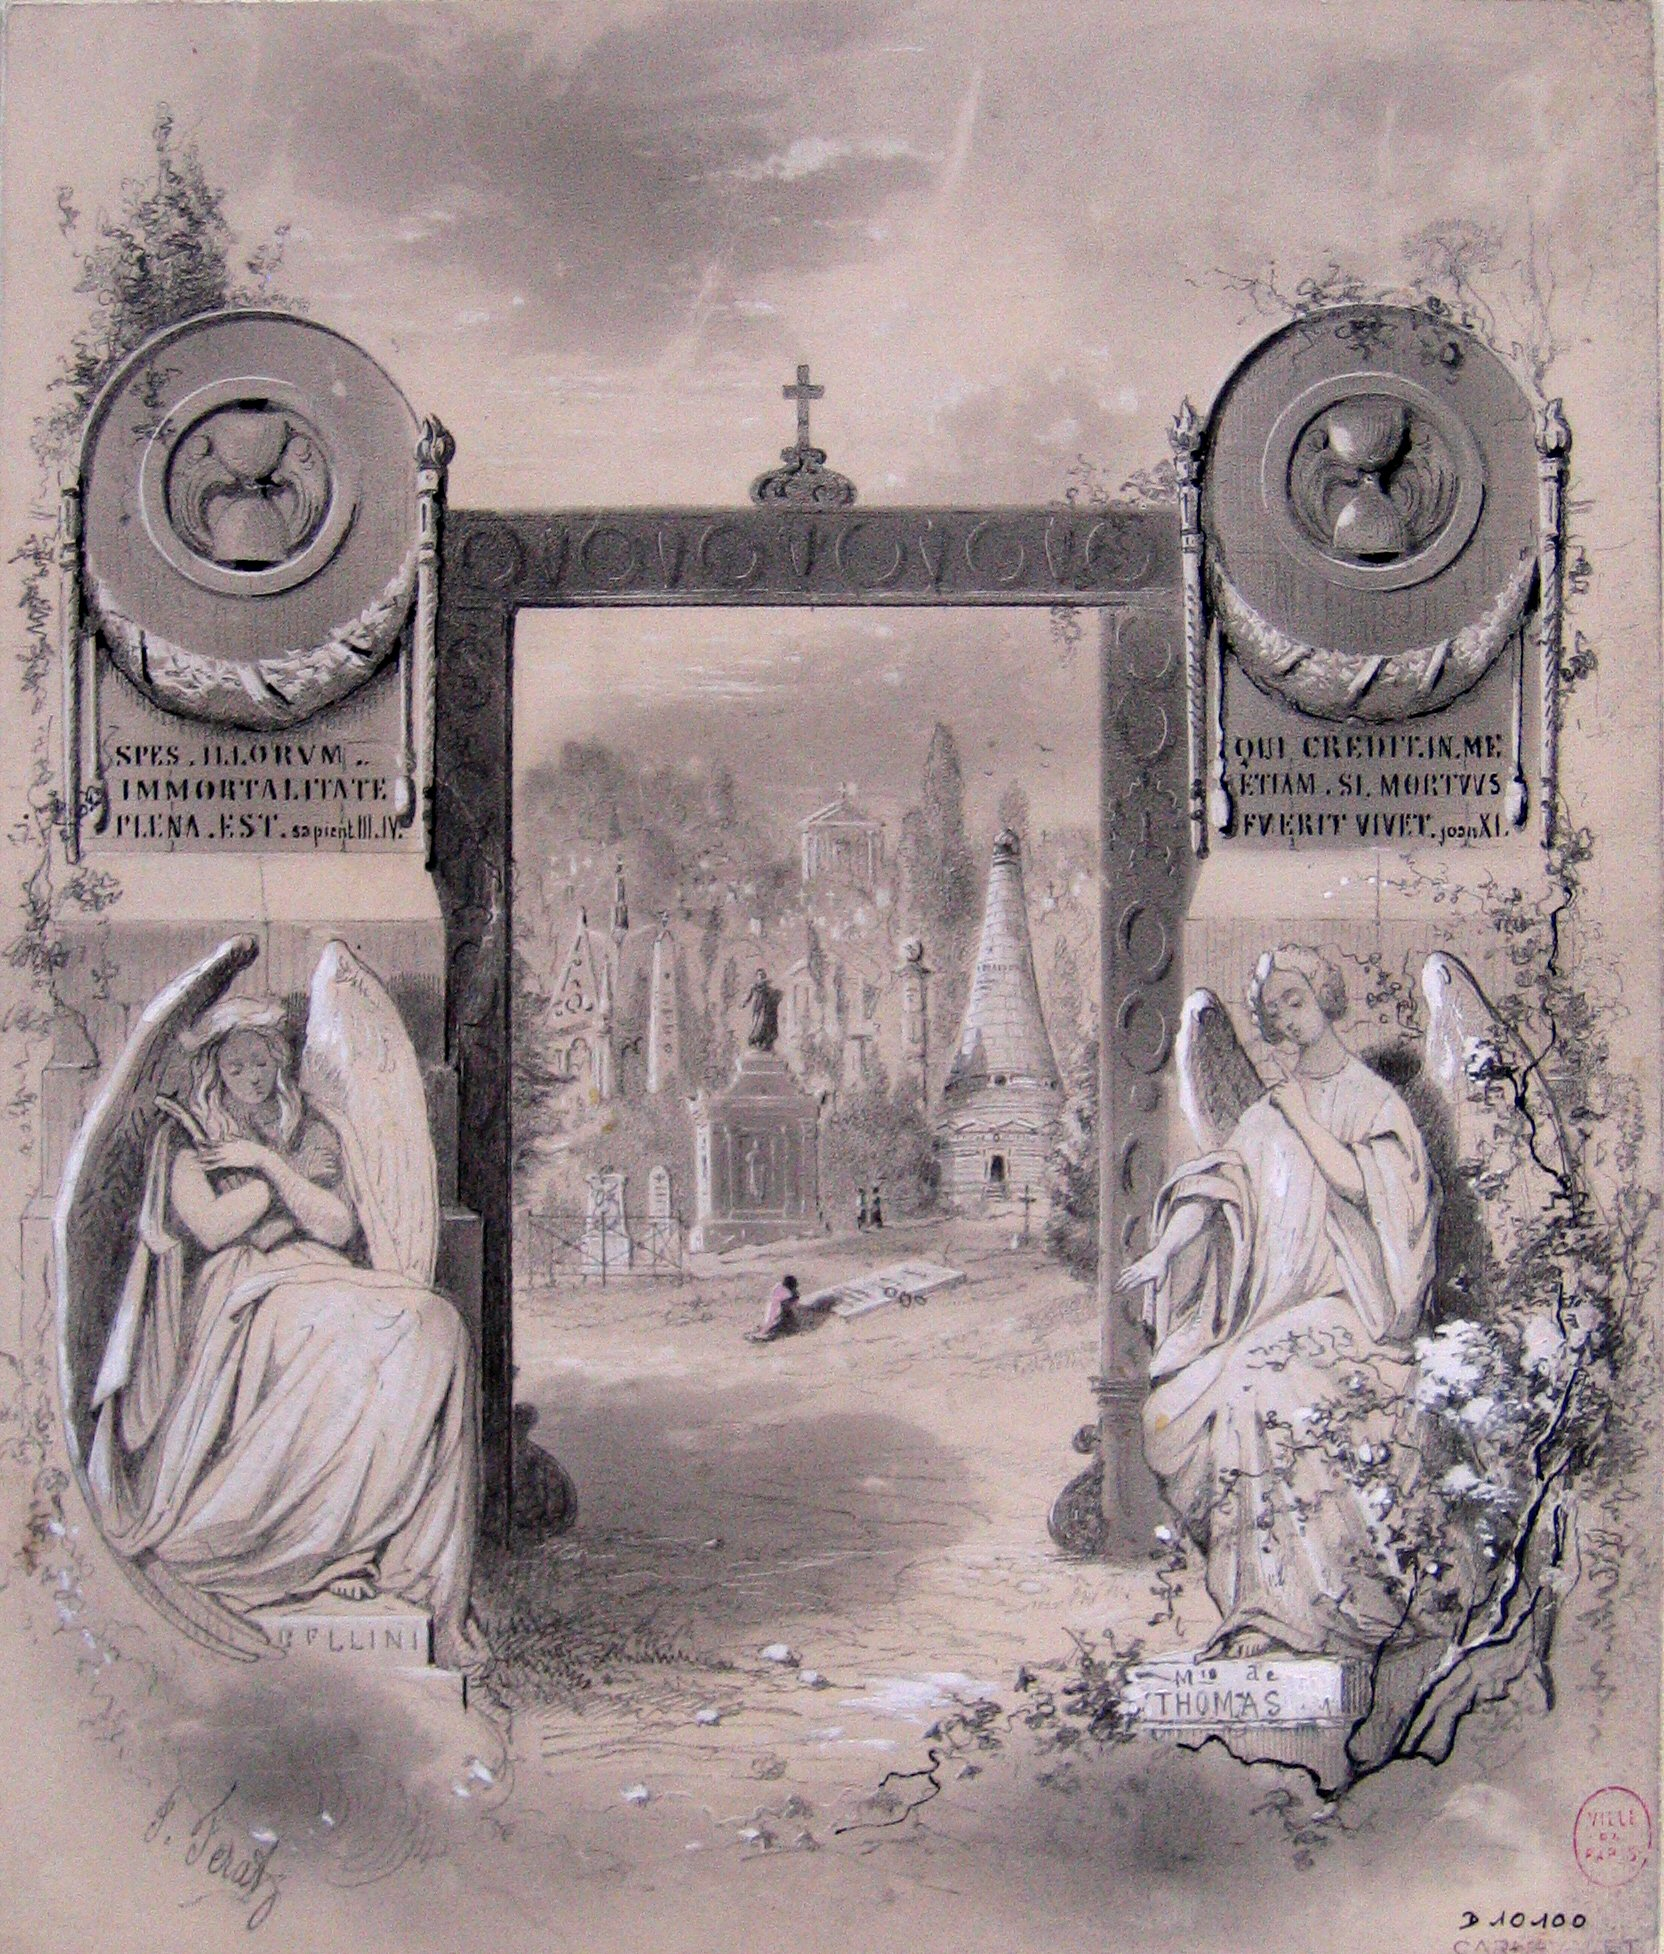 1850-60 fanciful rendition by Ferat